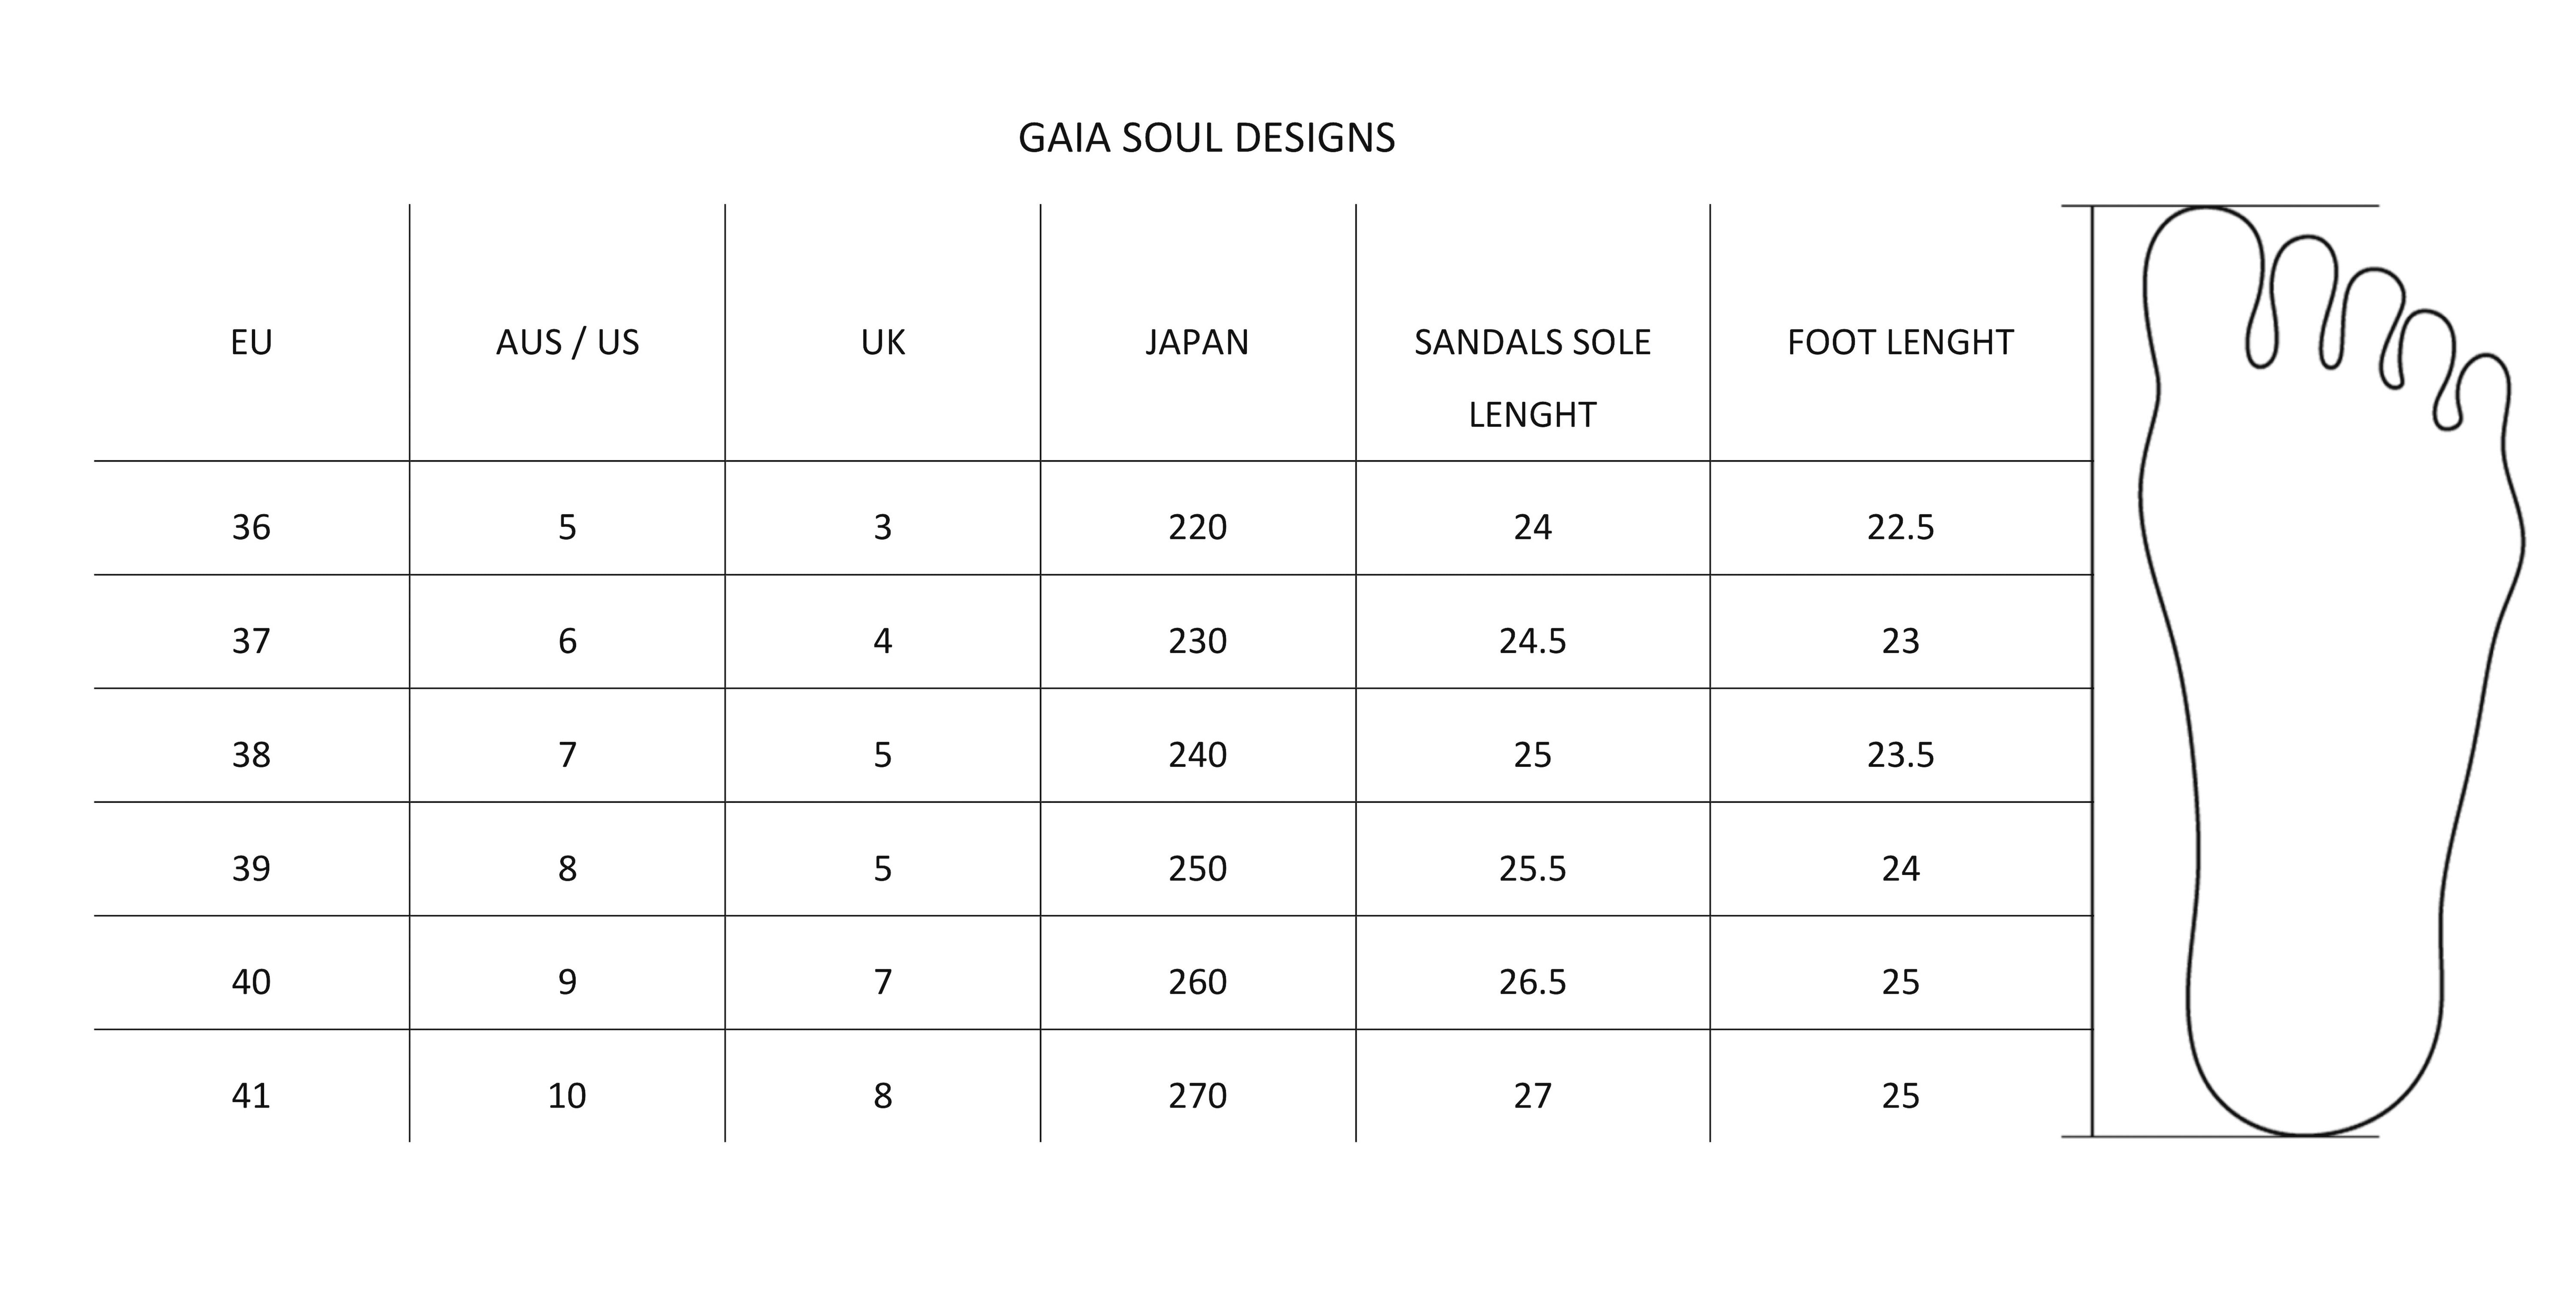 gaia soul designs sizing guide